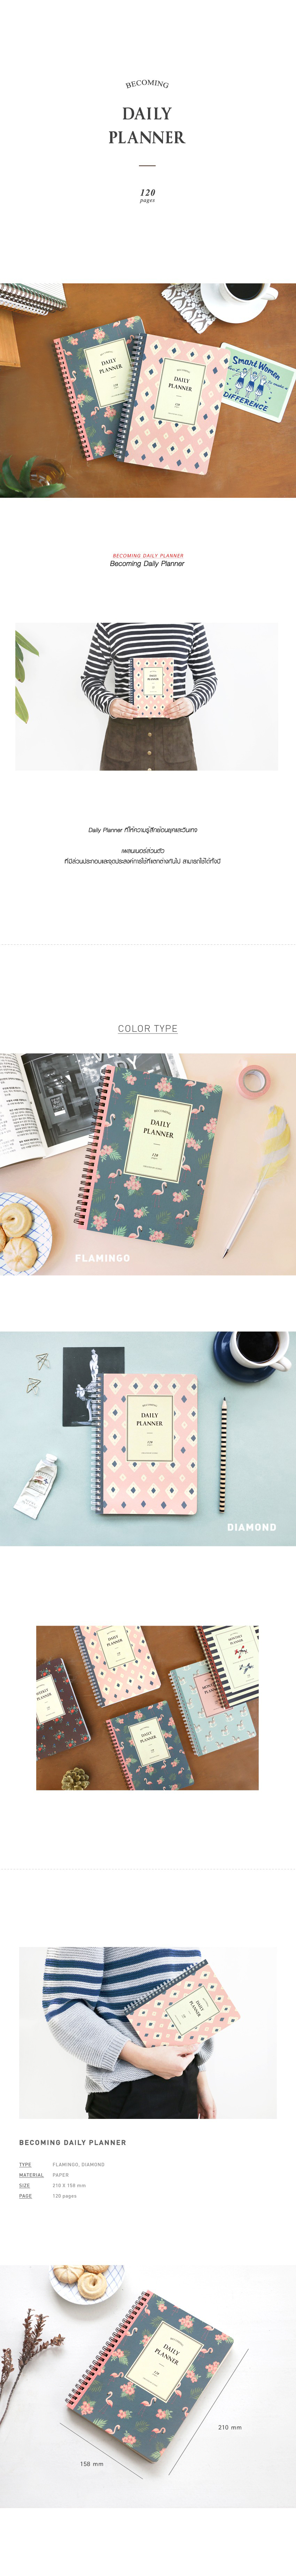 becoming-daily-planner-1.jpg